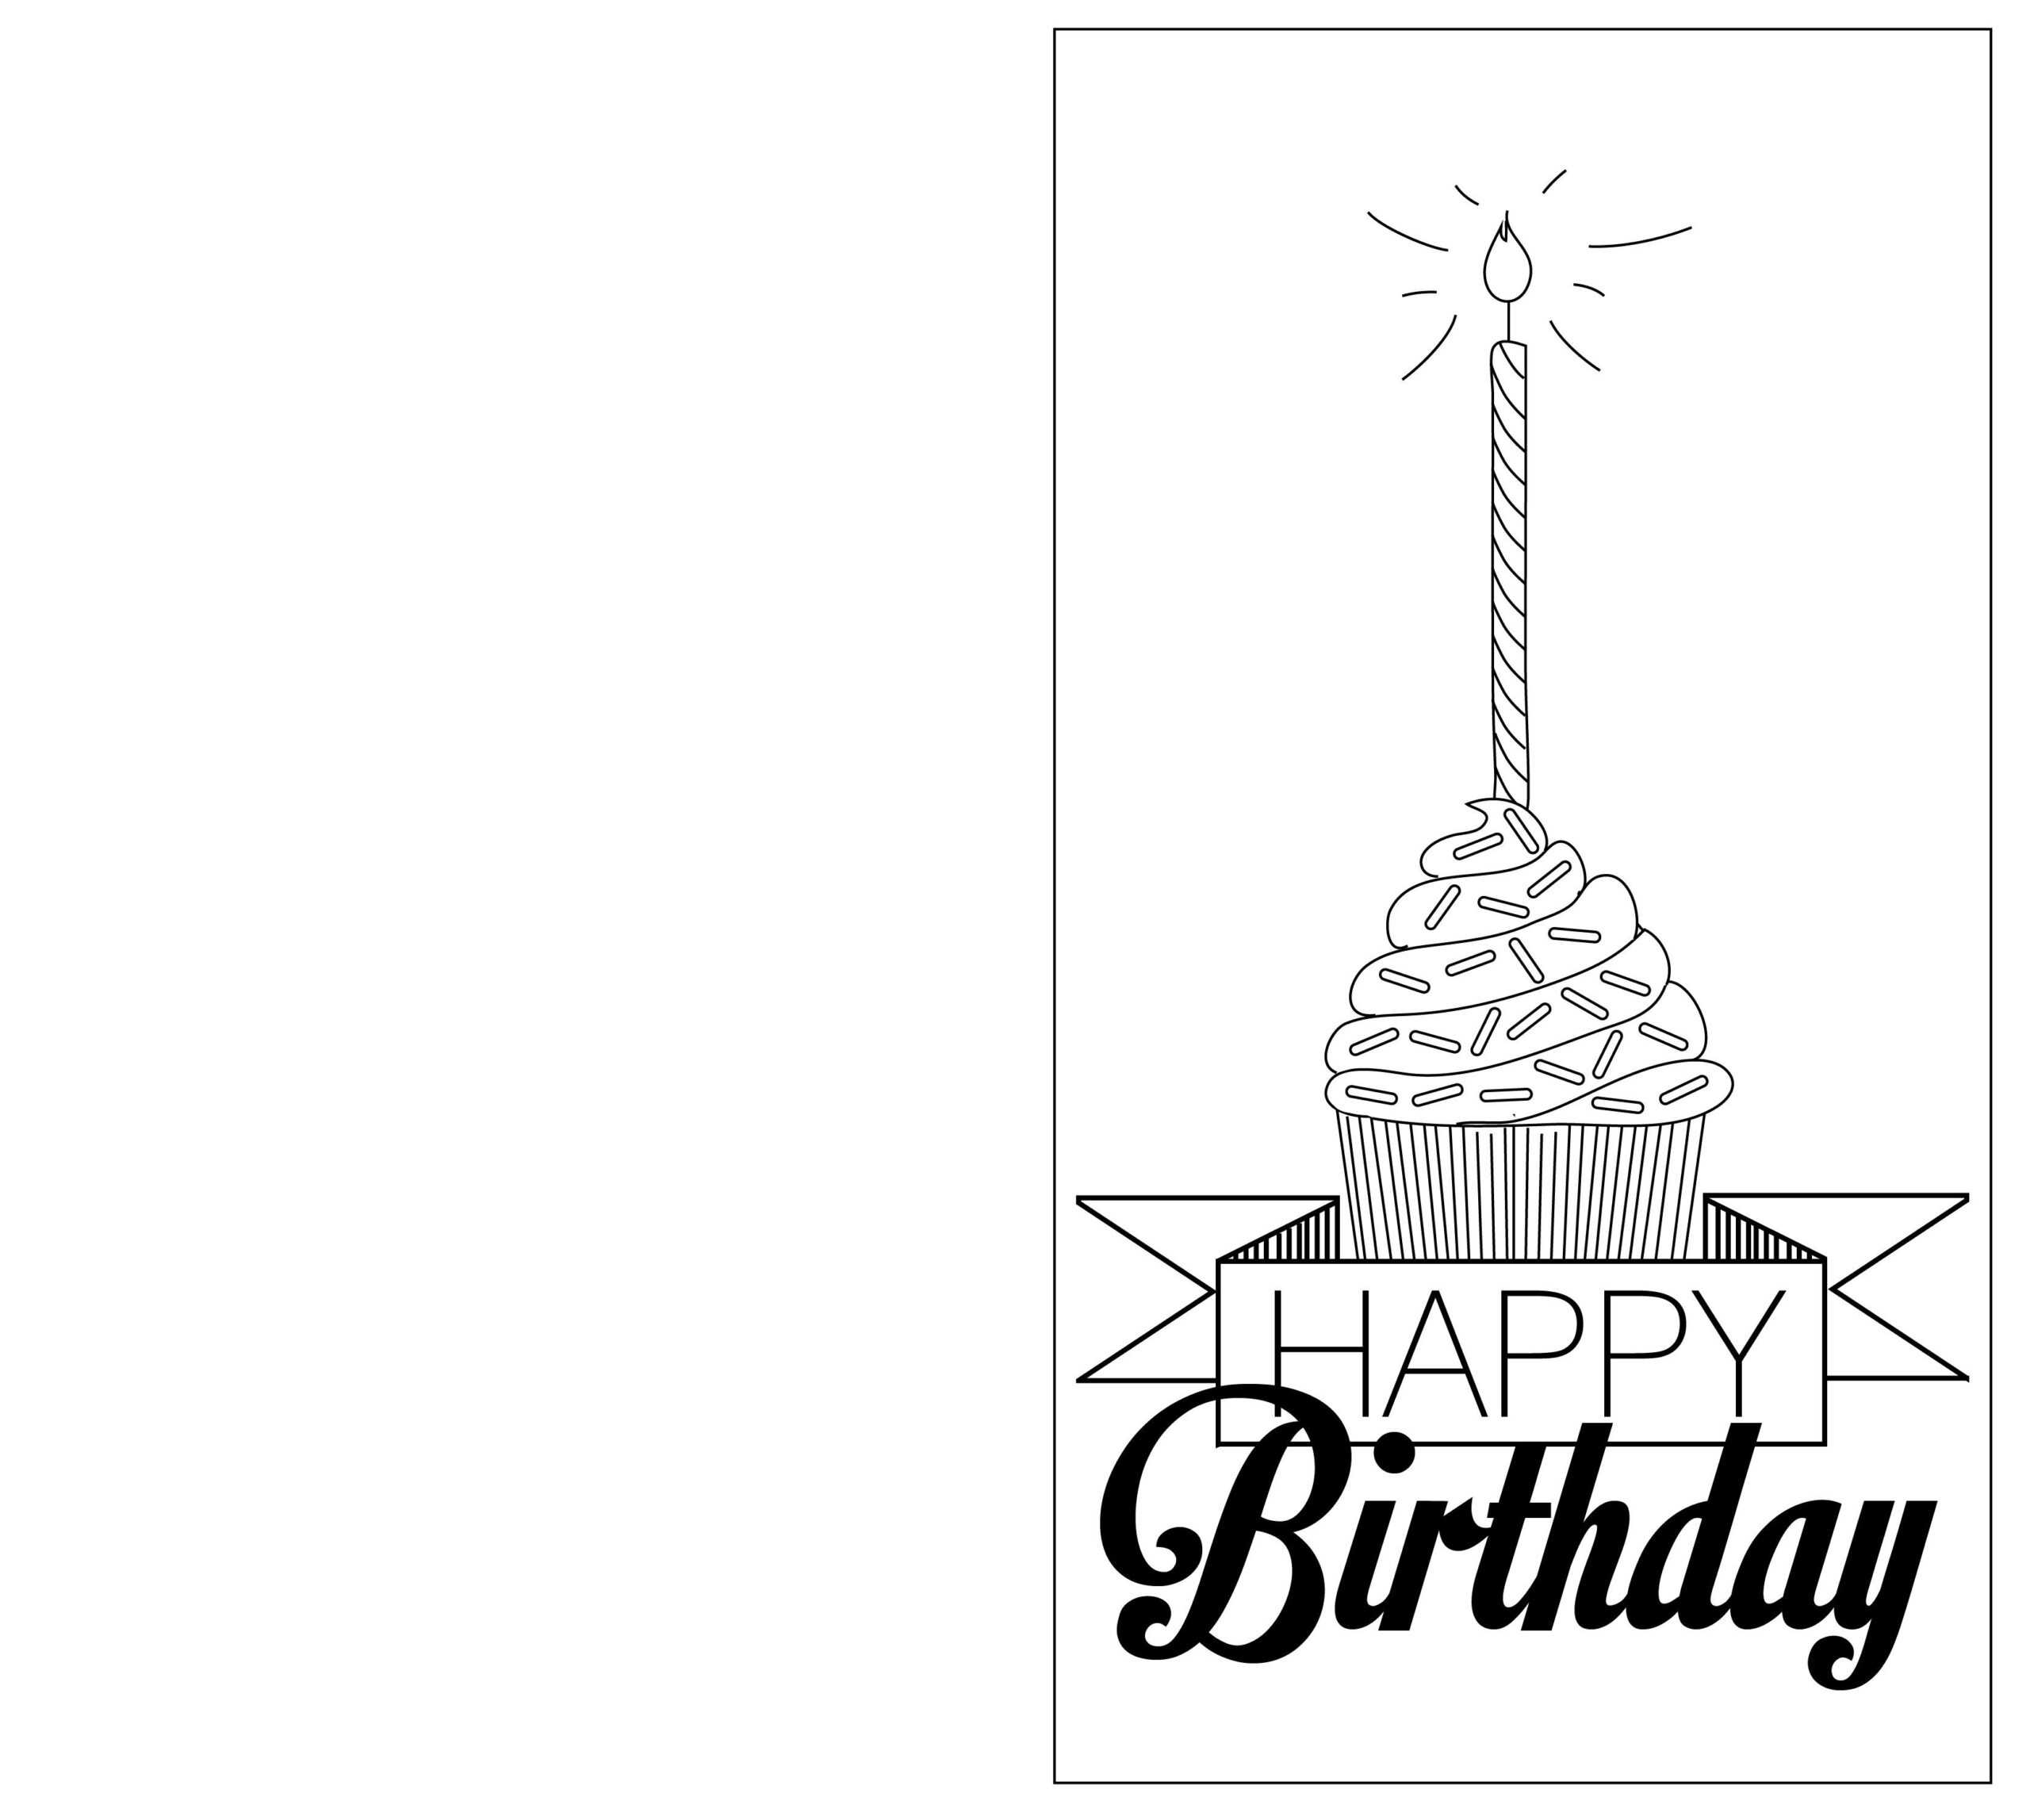 032 Printable Birthday Card Template Black And White Sample Throughout Foldable Birthday Card Template